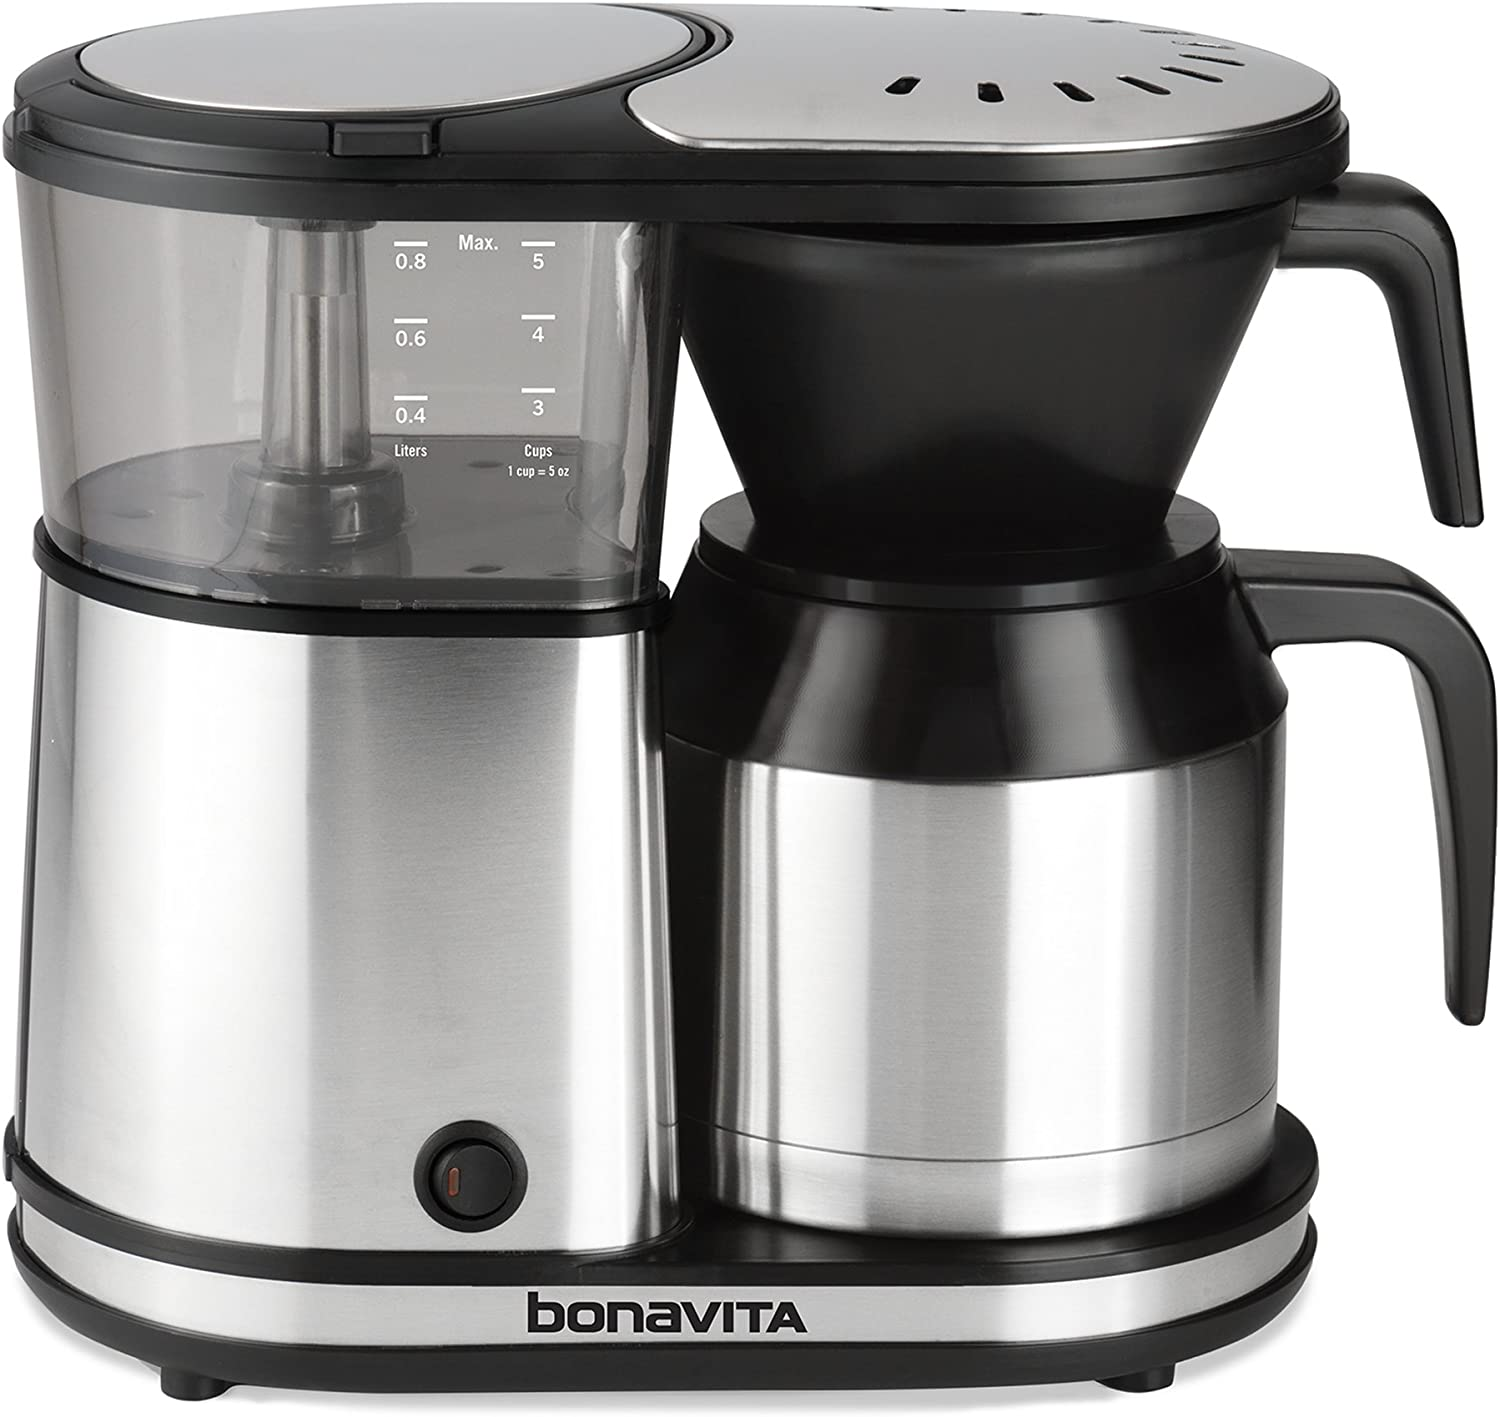 9. Bonavita 5-cup one-touch, high performing least expensive coffee maker